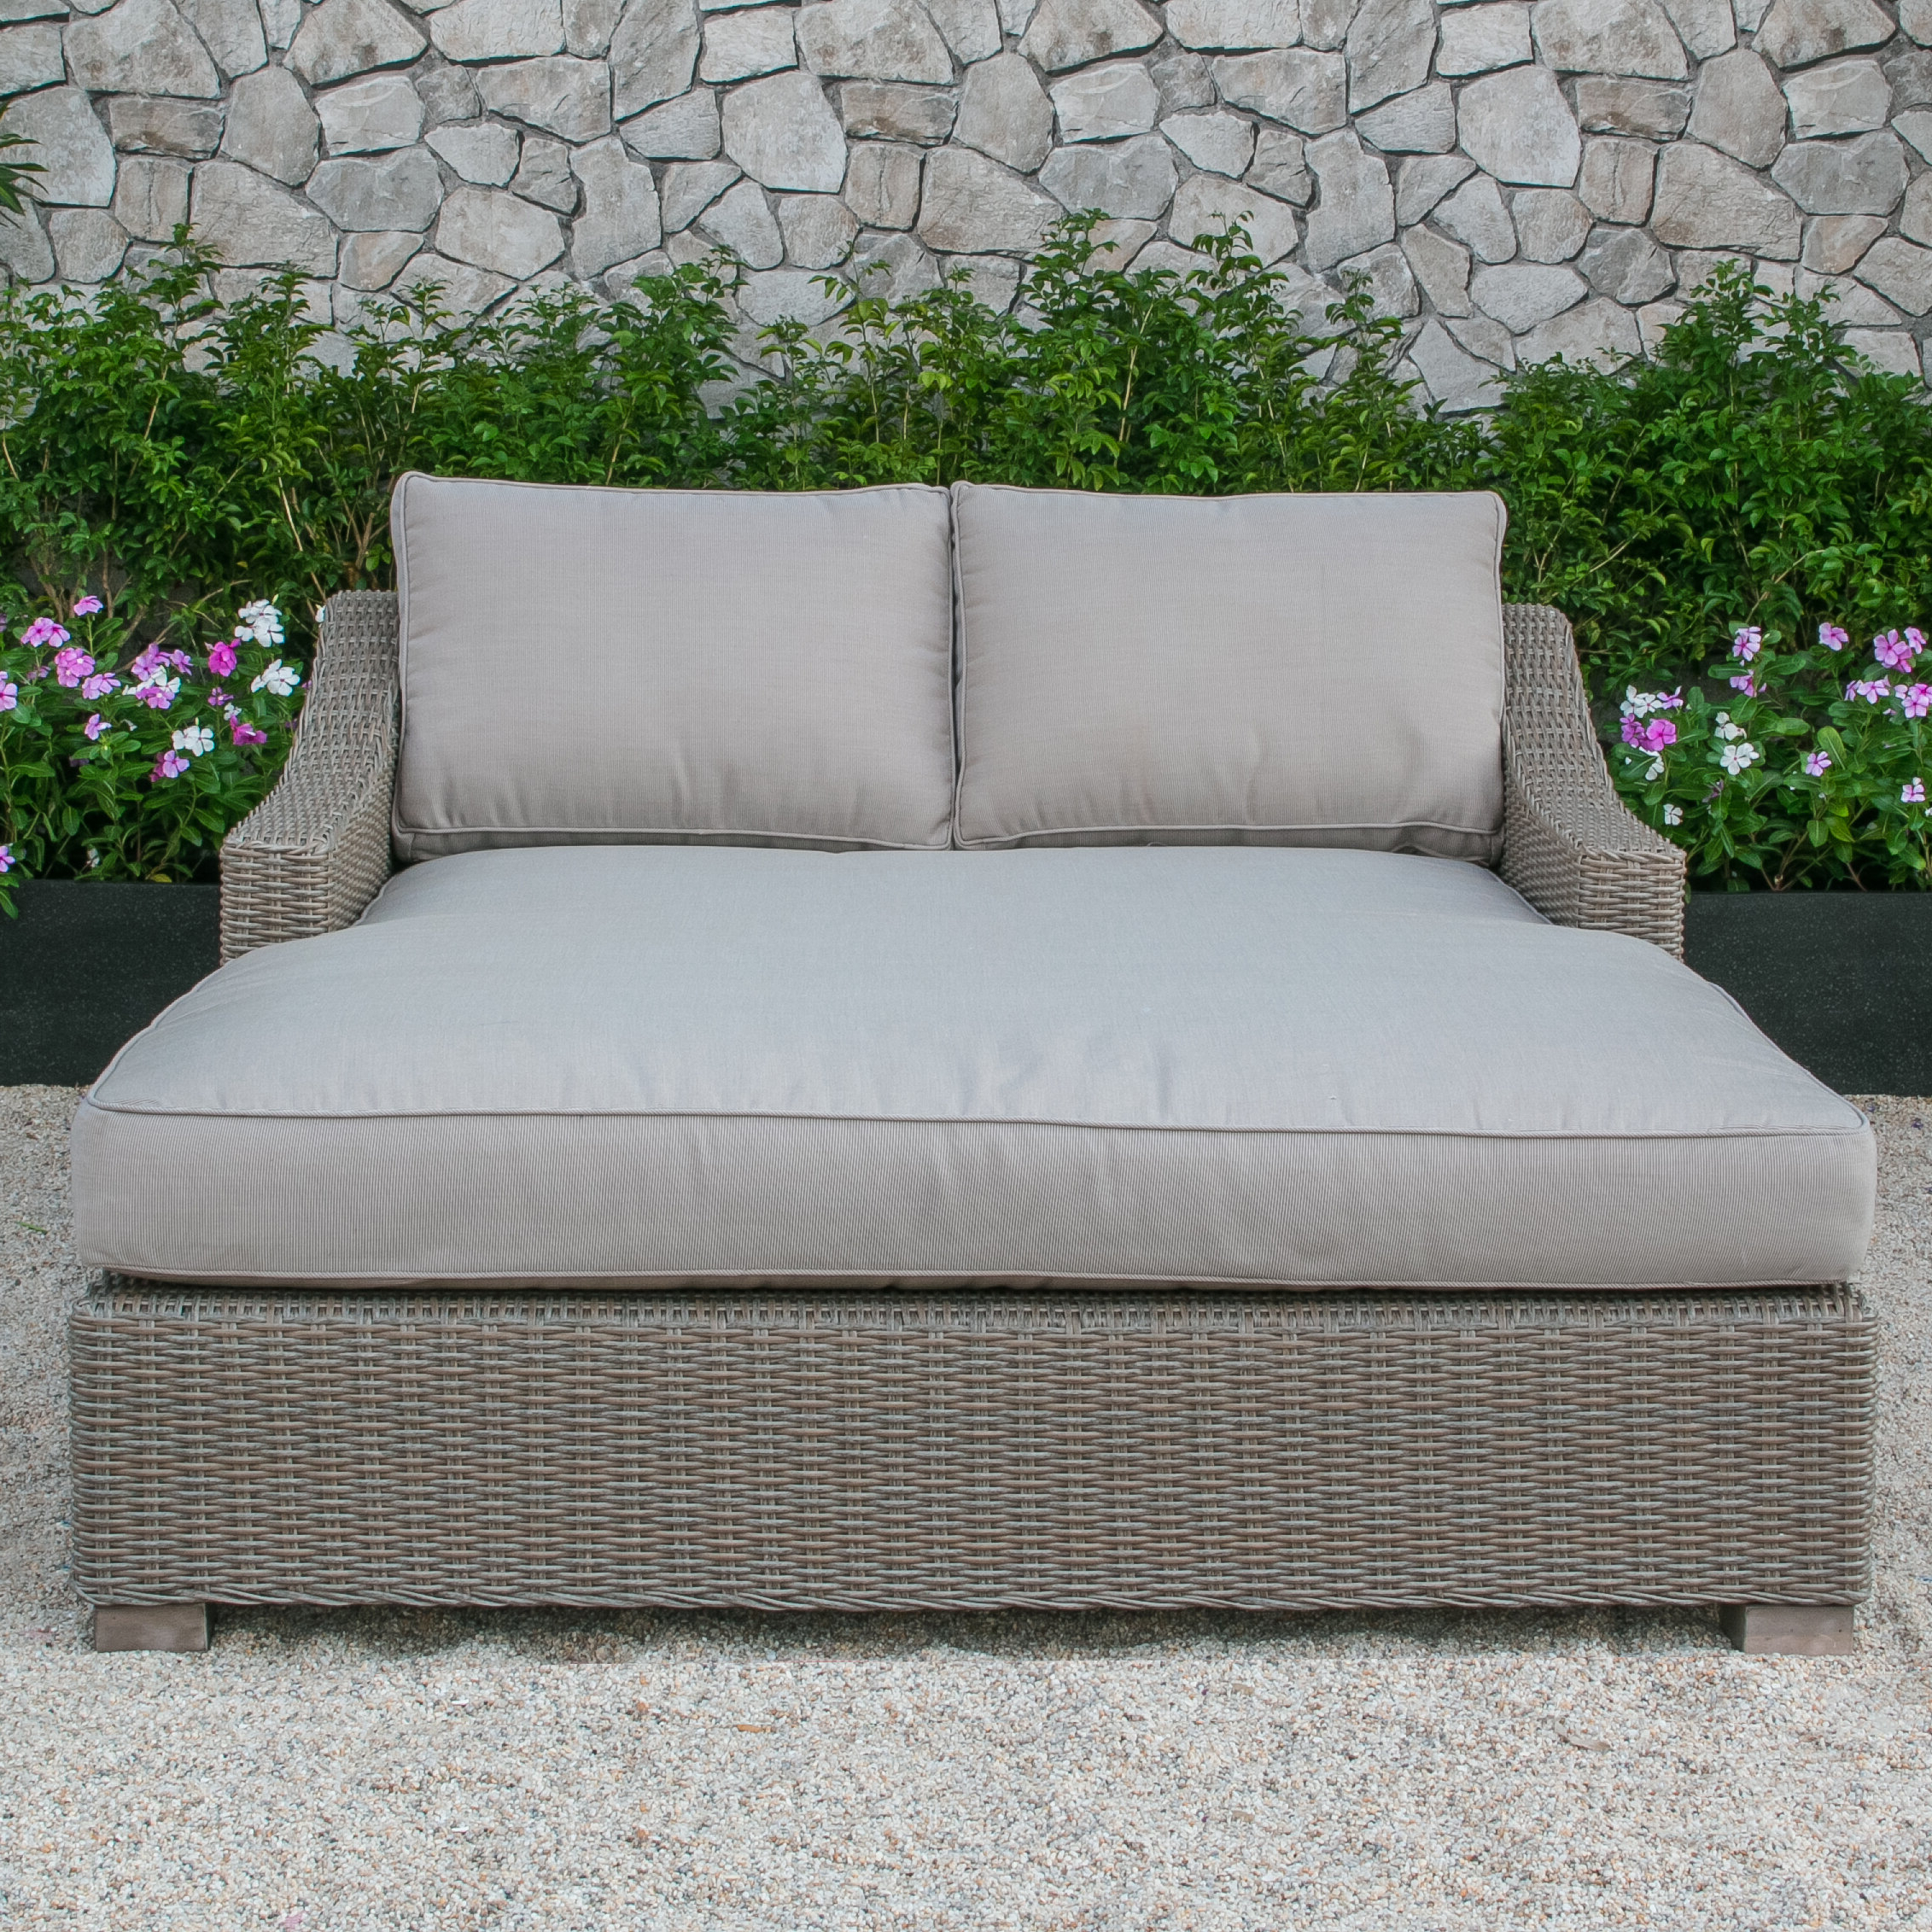 Fashionable Naperville Patio Daybed With Cushion With Regard To Dowling Patio Daybeds With Cushion (View 10 of 25)